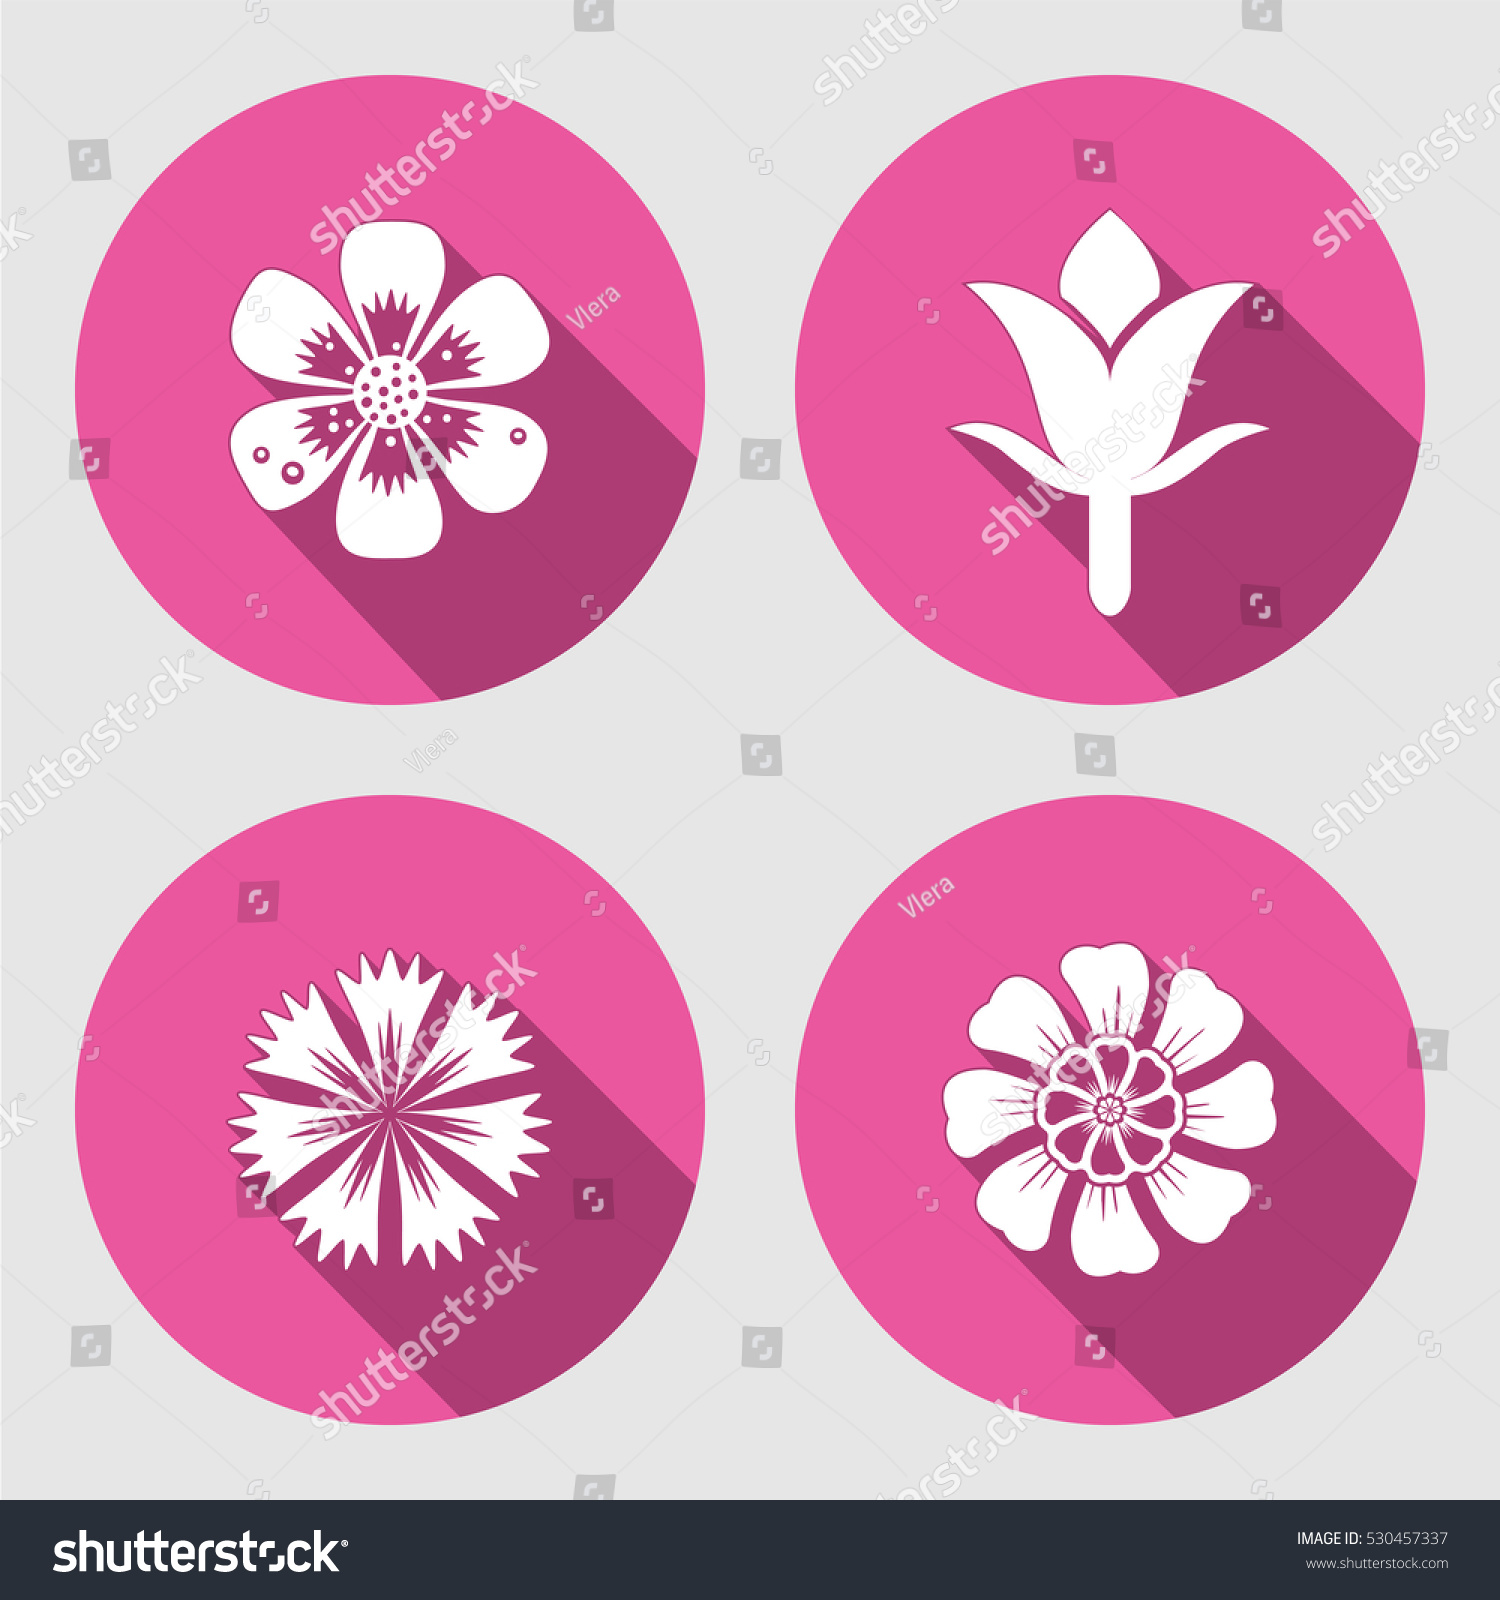 Flower icons set chamomile daisy poppy stock vector 530457337 flower icons set chamomile daisy poppy cloves spring flowers floral biocorpaavc Choice Image